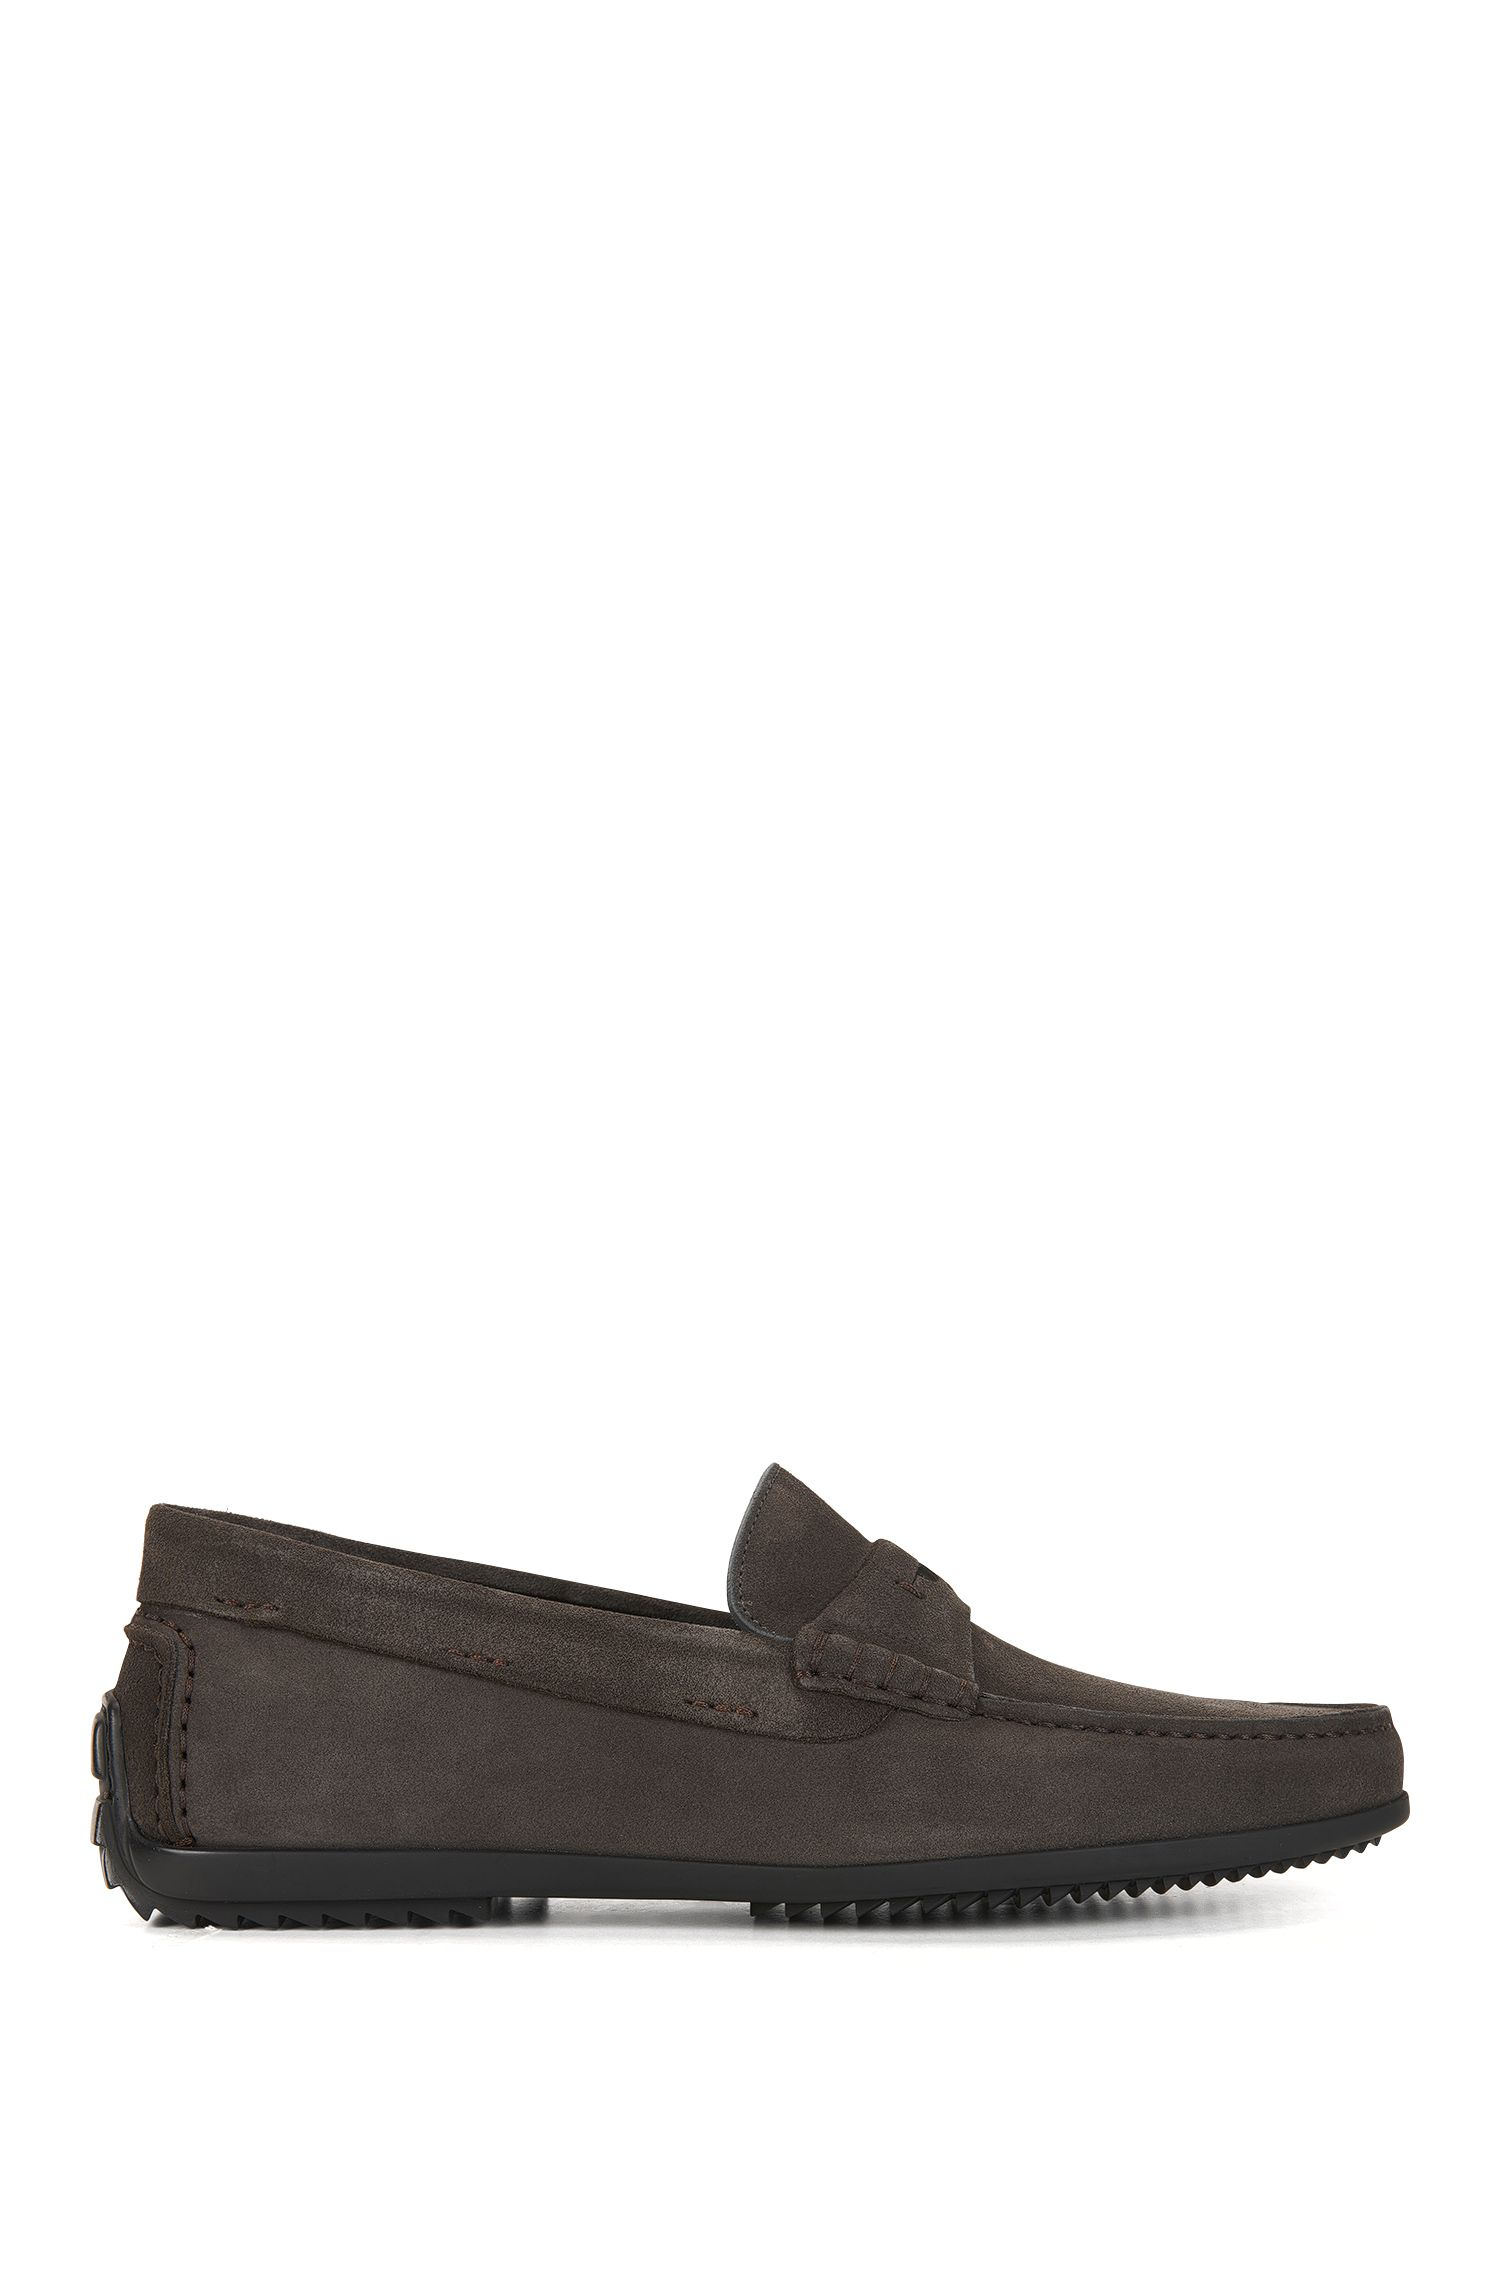 Penny moccasins in soft suede